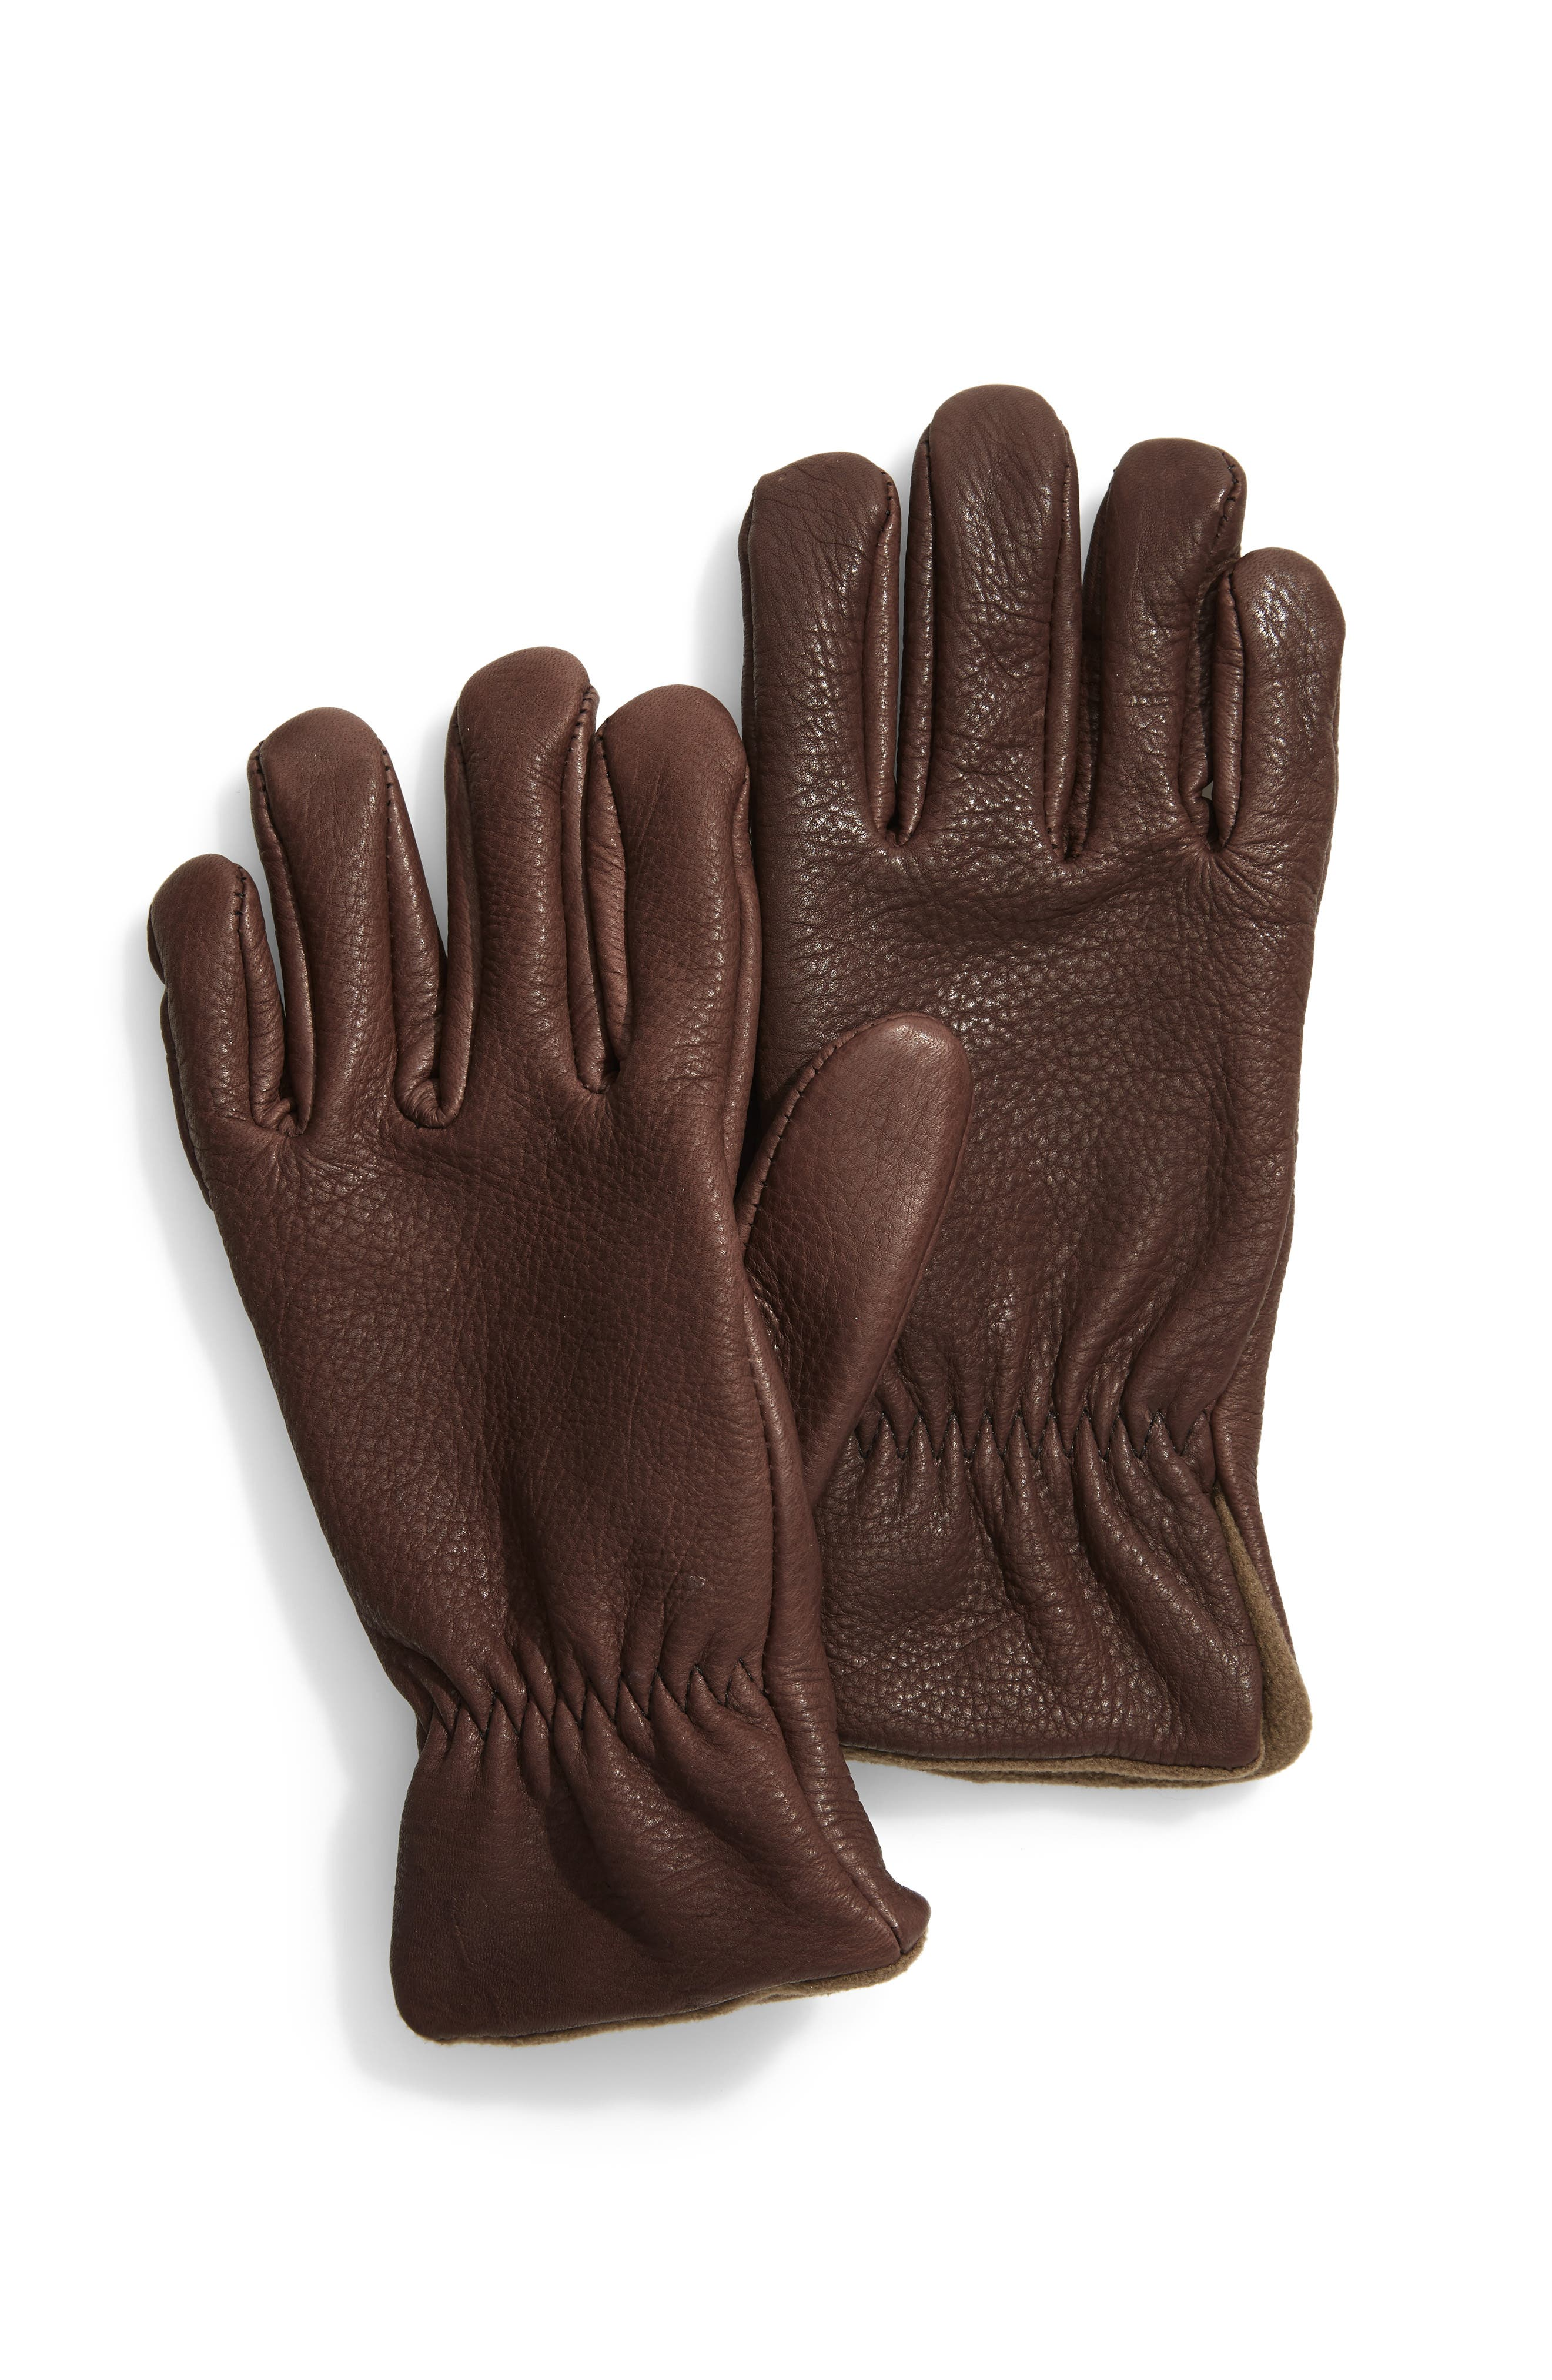 Roper Lined Deerskin Gloves,                             Main thumbnail 1, color,                             CHOCOLATE